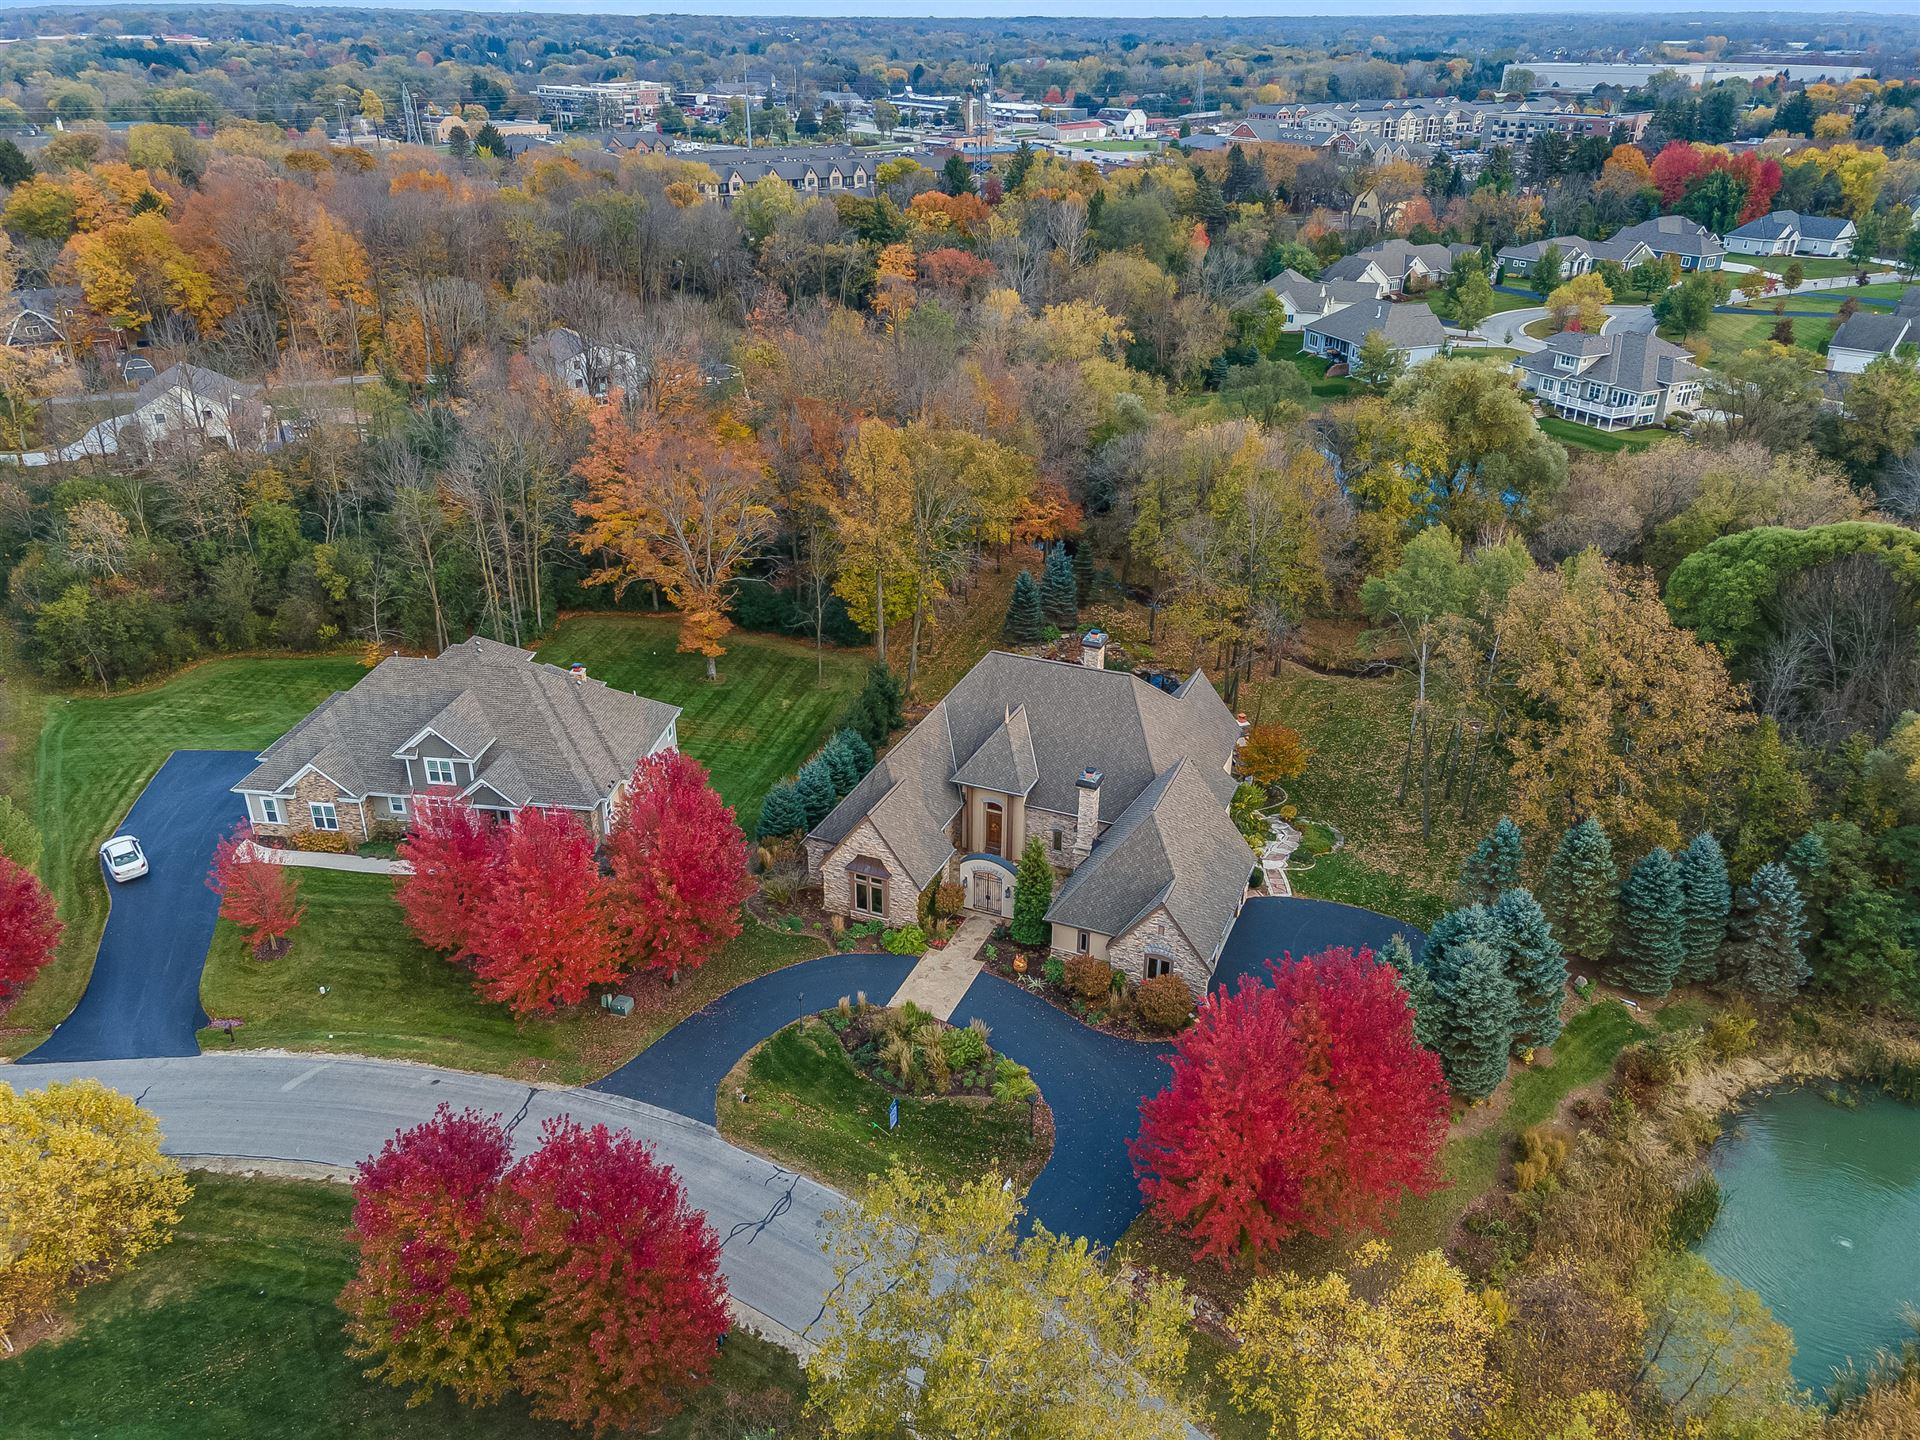 11390 N Creekside Ct, Mequon, WI 53092 - #: 1716014